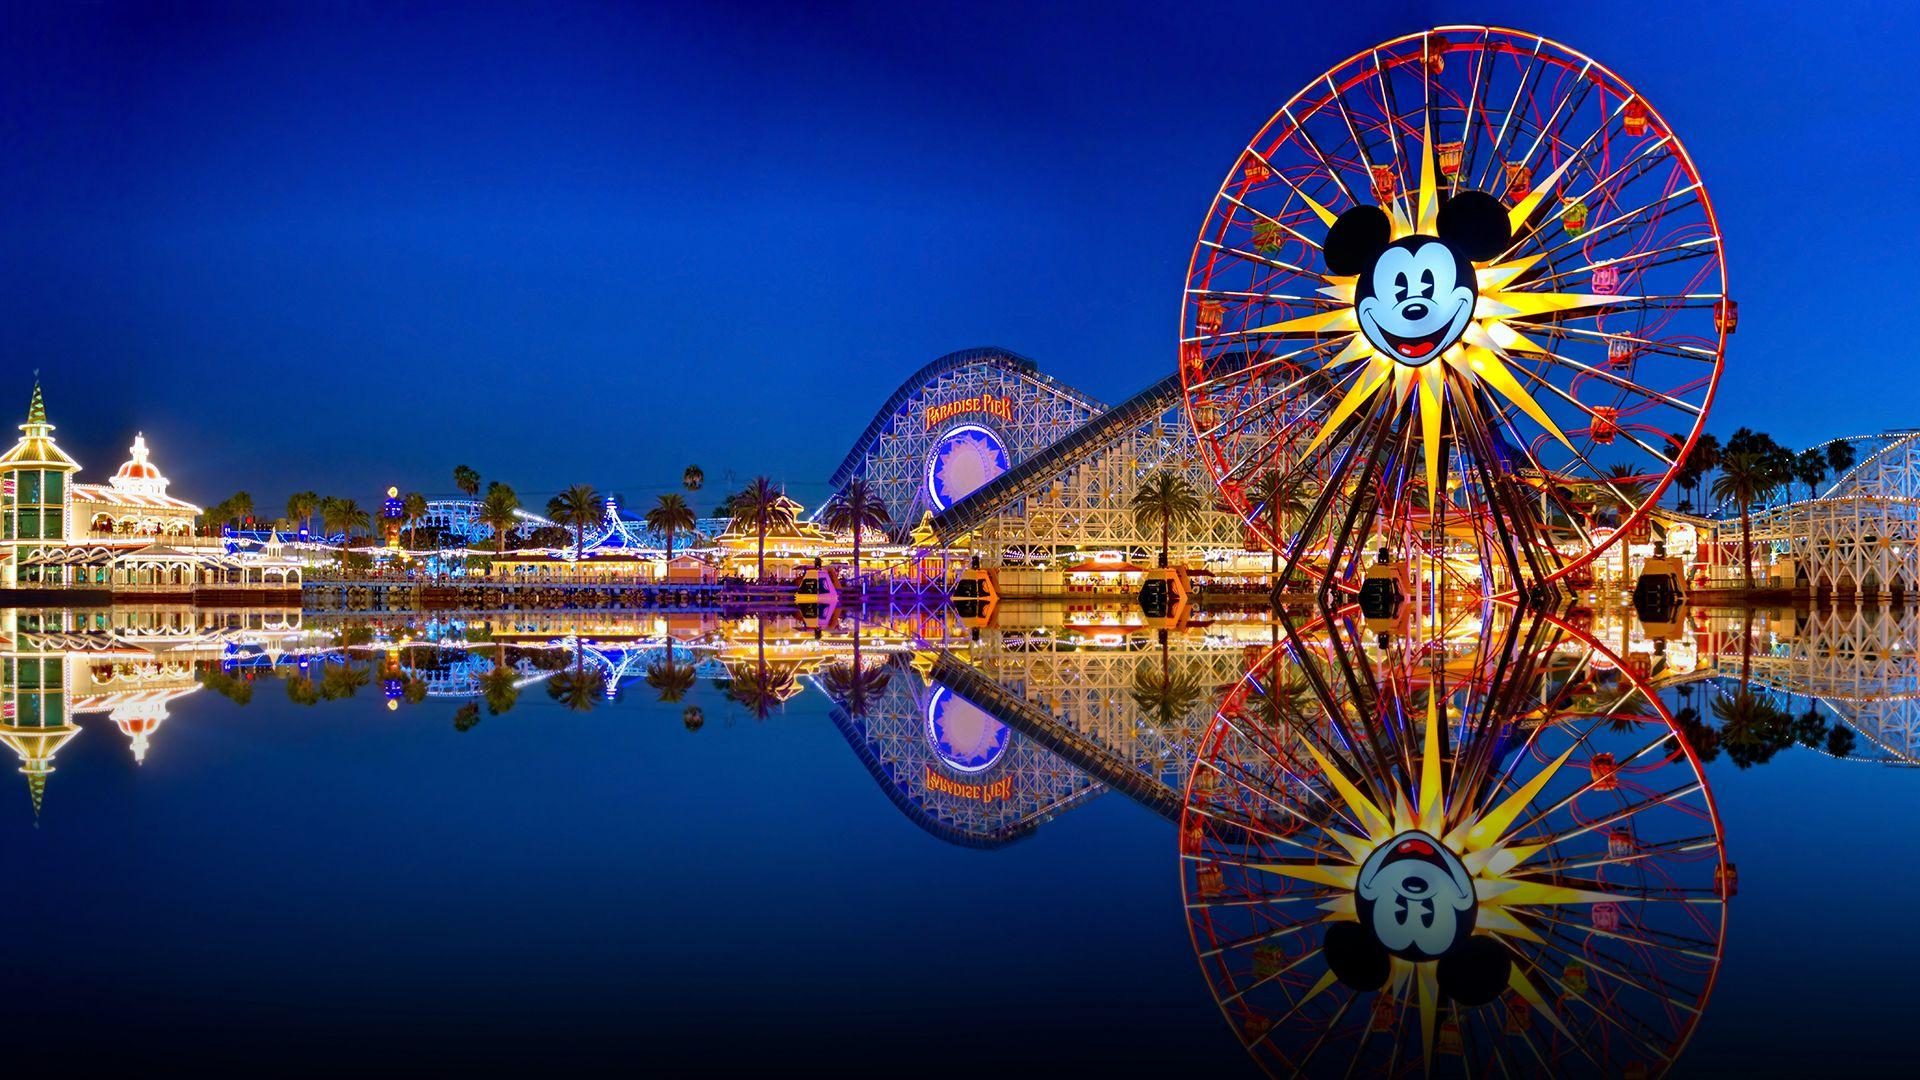 Disneyland Full HD Wallpaper.